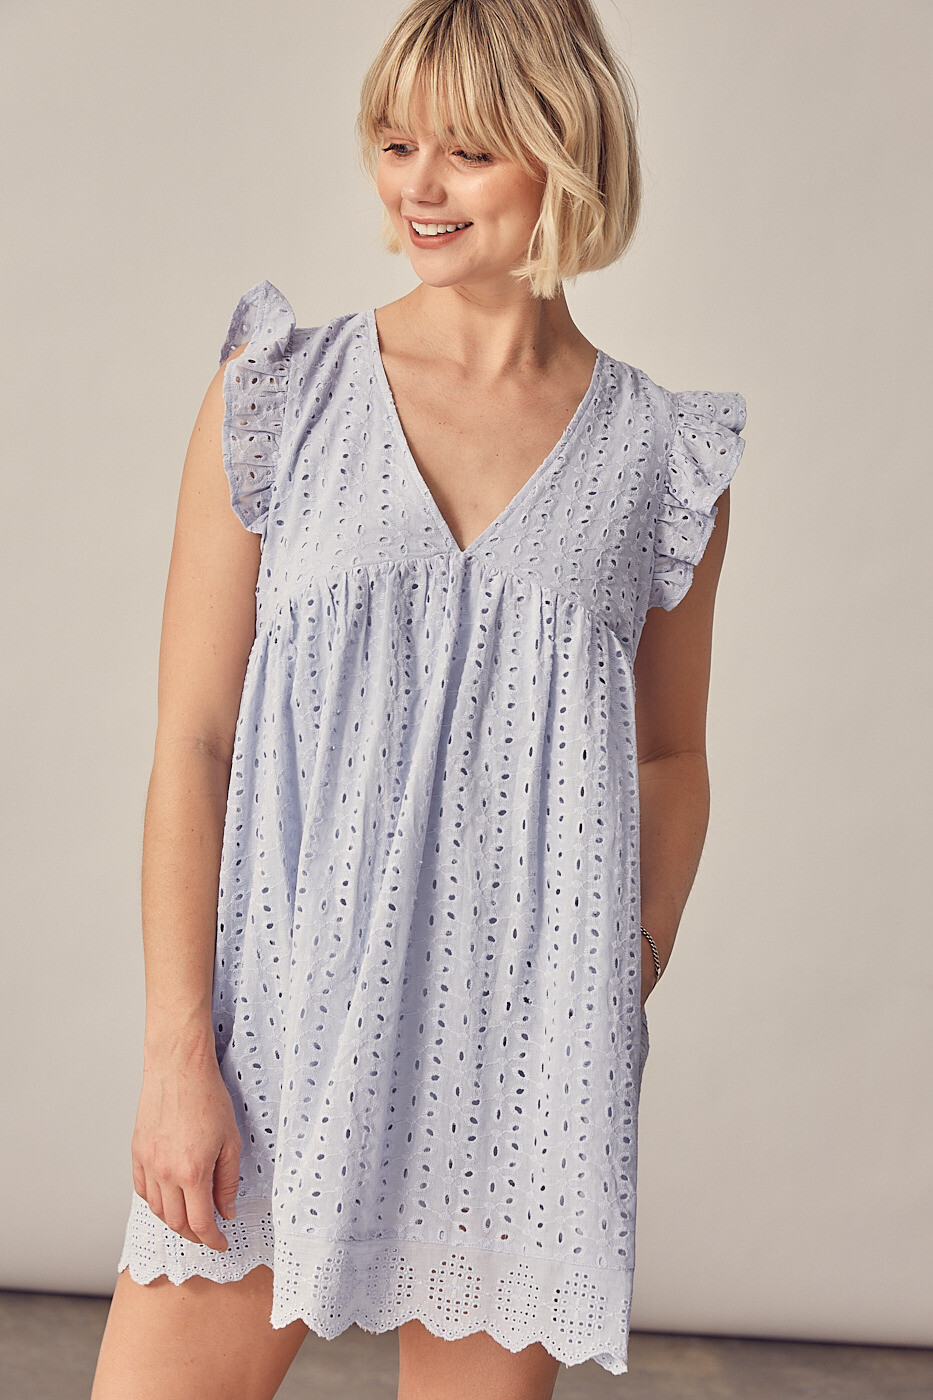 Eyelet Babydoll Romper/Dress